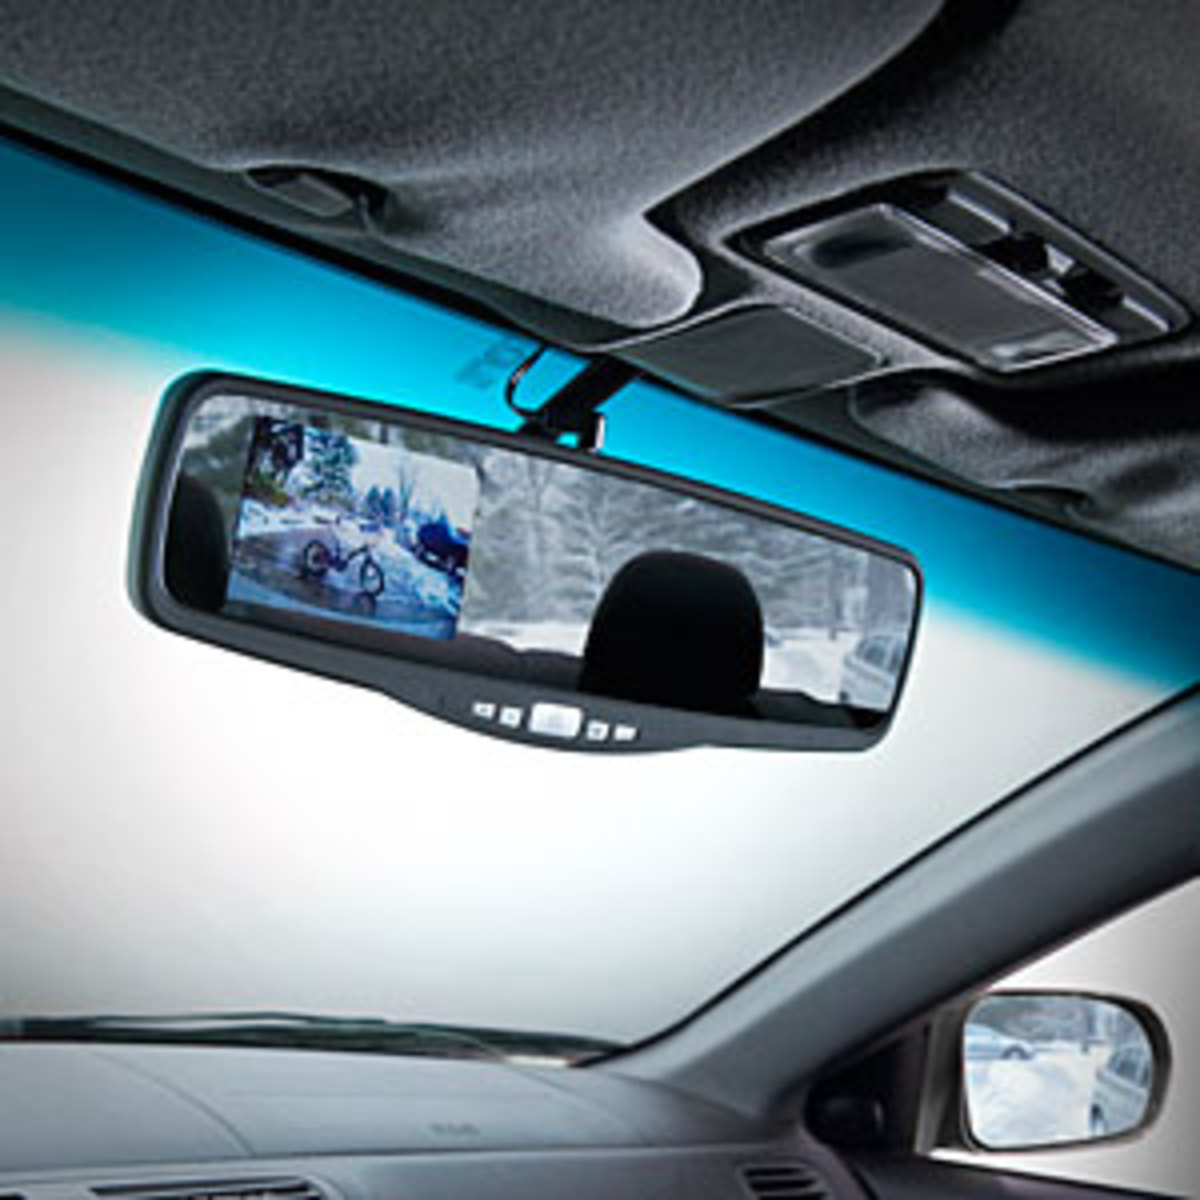 Aftermarket backup cameras - which is the best?